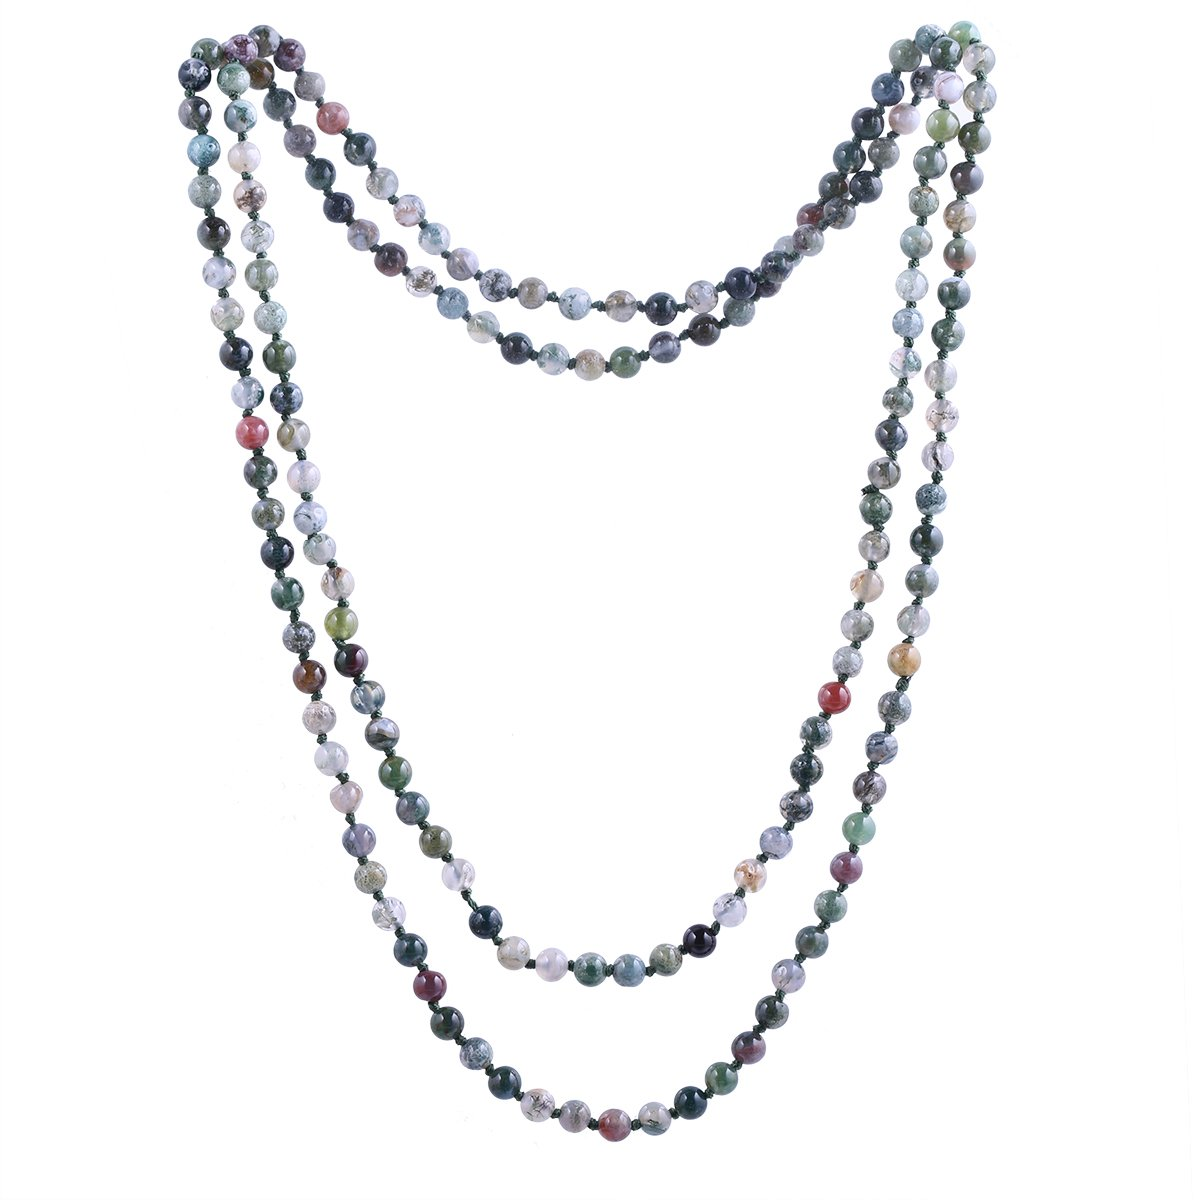 Qitian 6mm India Agate Beads Necklace Women Handmade Long Necklace Stone Beads Necklaces 47'' by Qitian